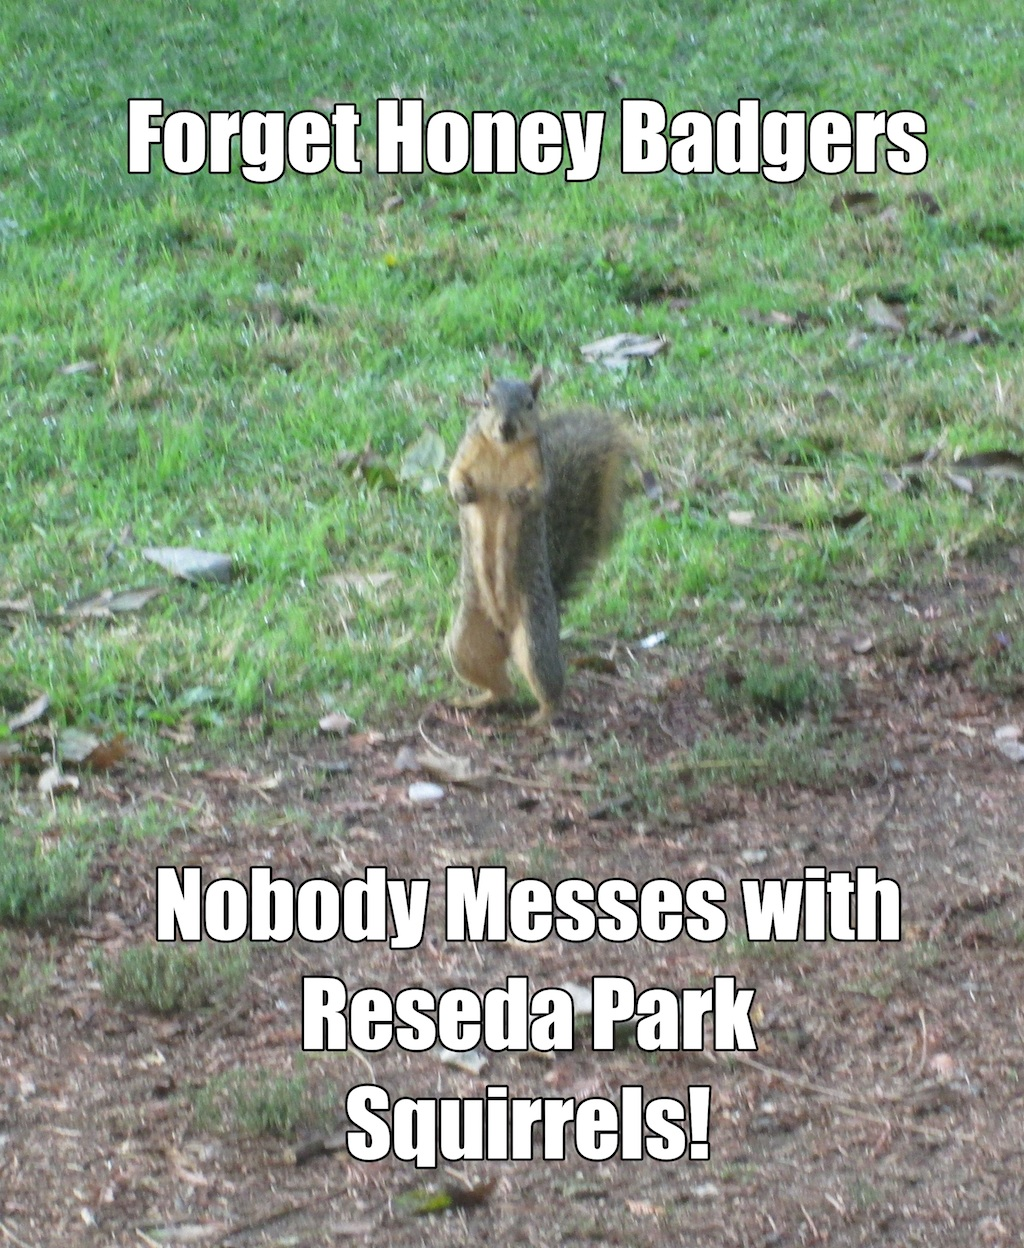 Forget honey badgers, nobody messes with Reseda Park squirrels!